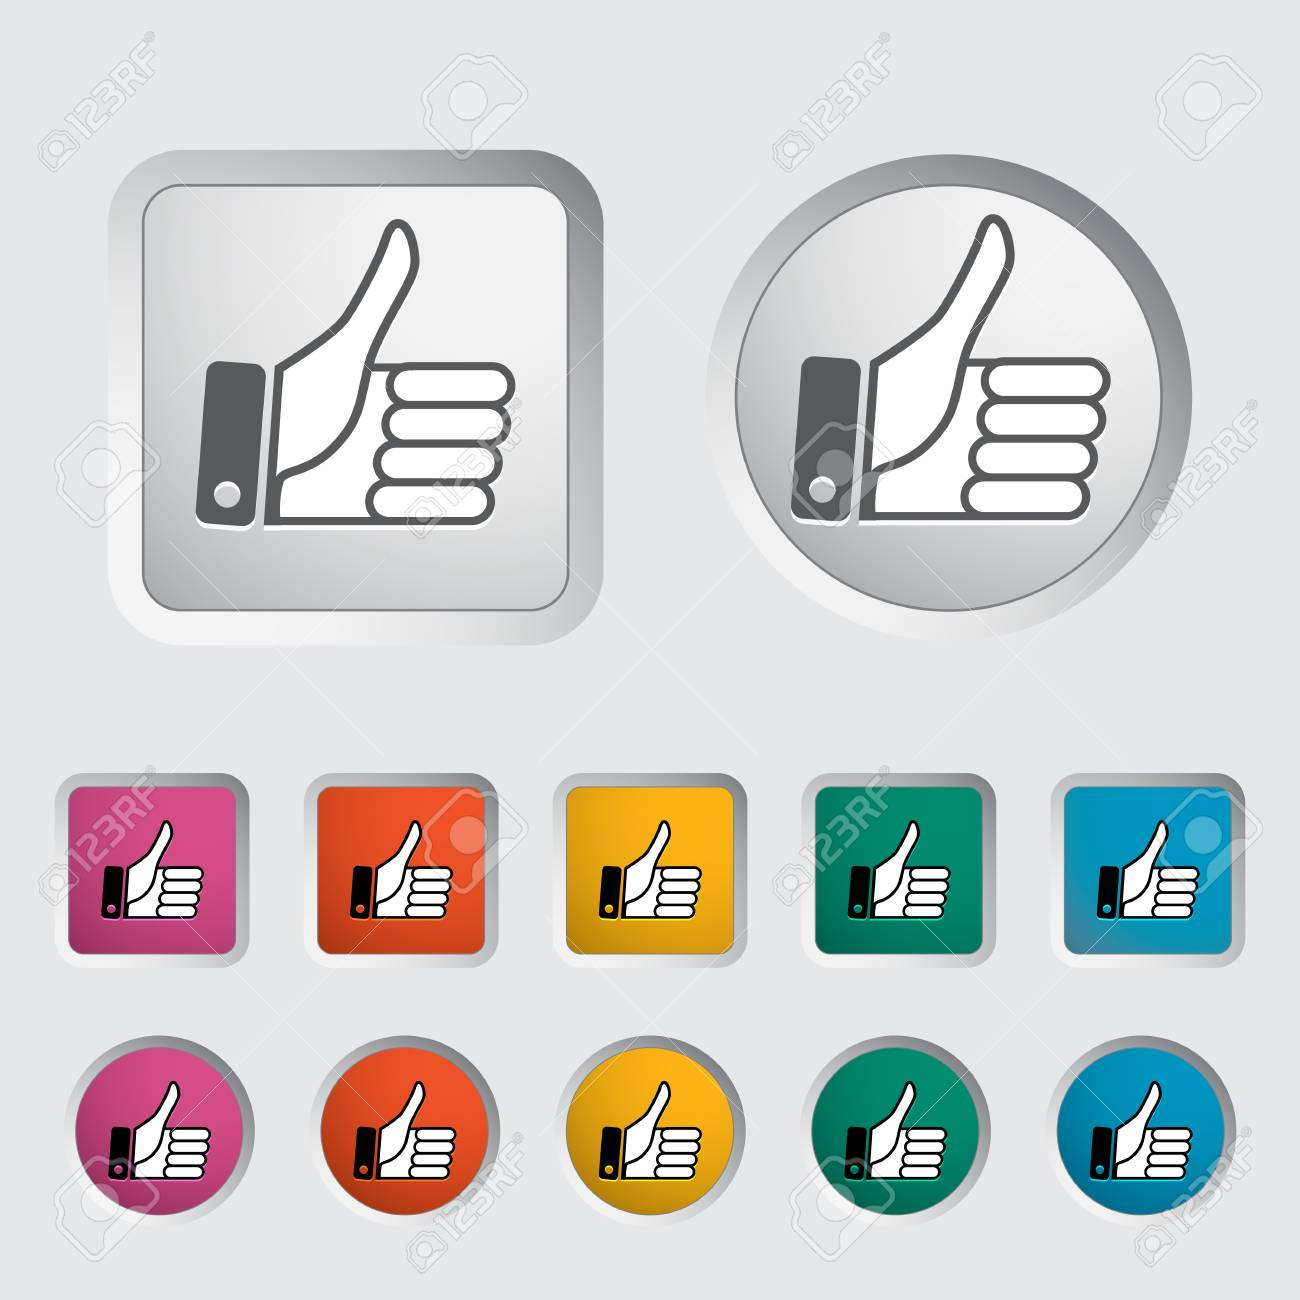 Like icon. Vector illustration Stock Vector - 17304376